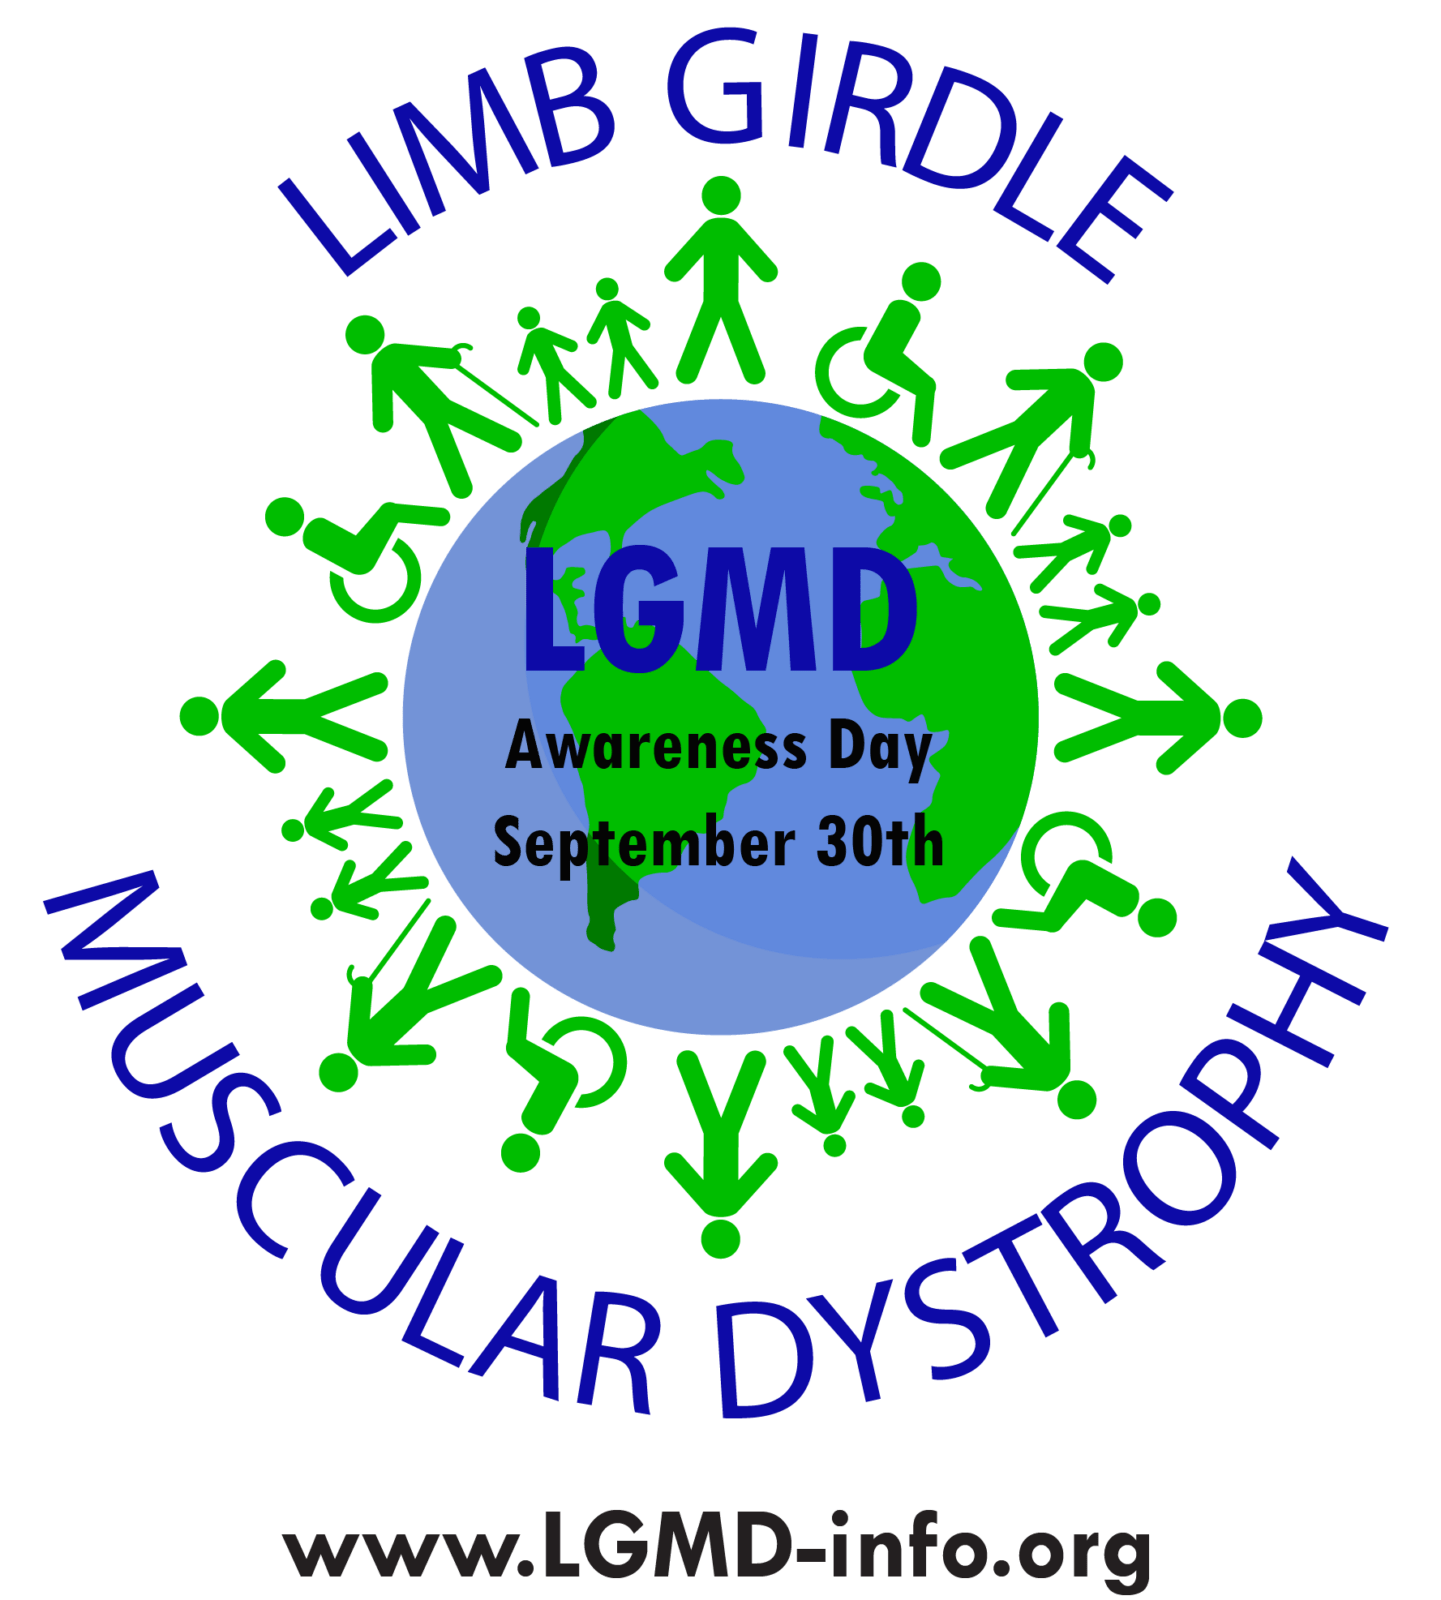 lgmd awareness day lgmd info